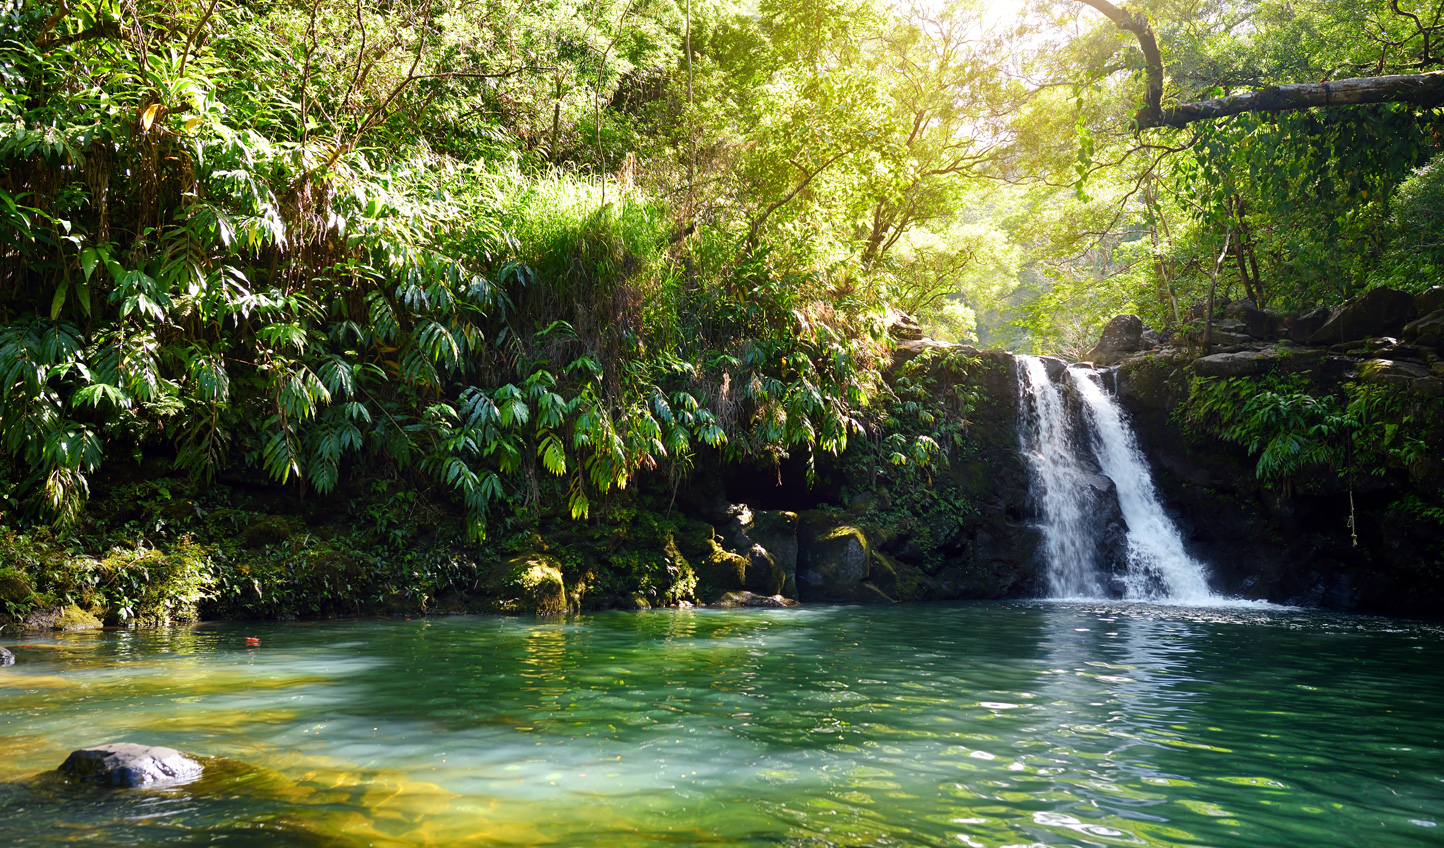 Discover hidden natural beauty in Hawaii